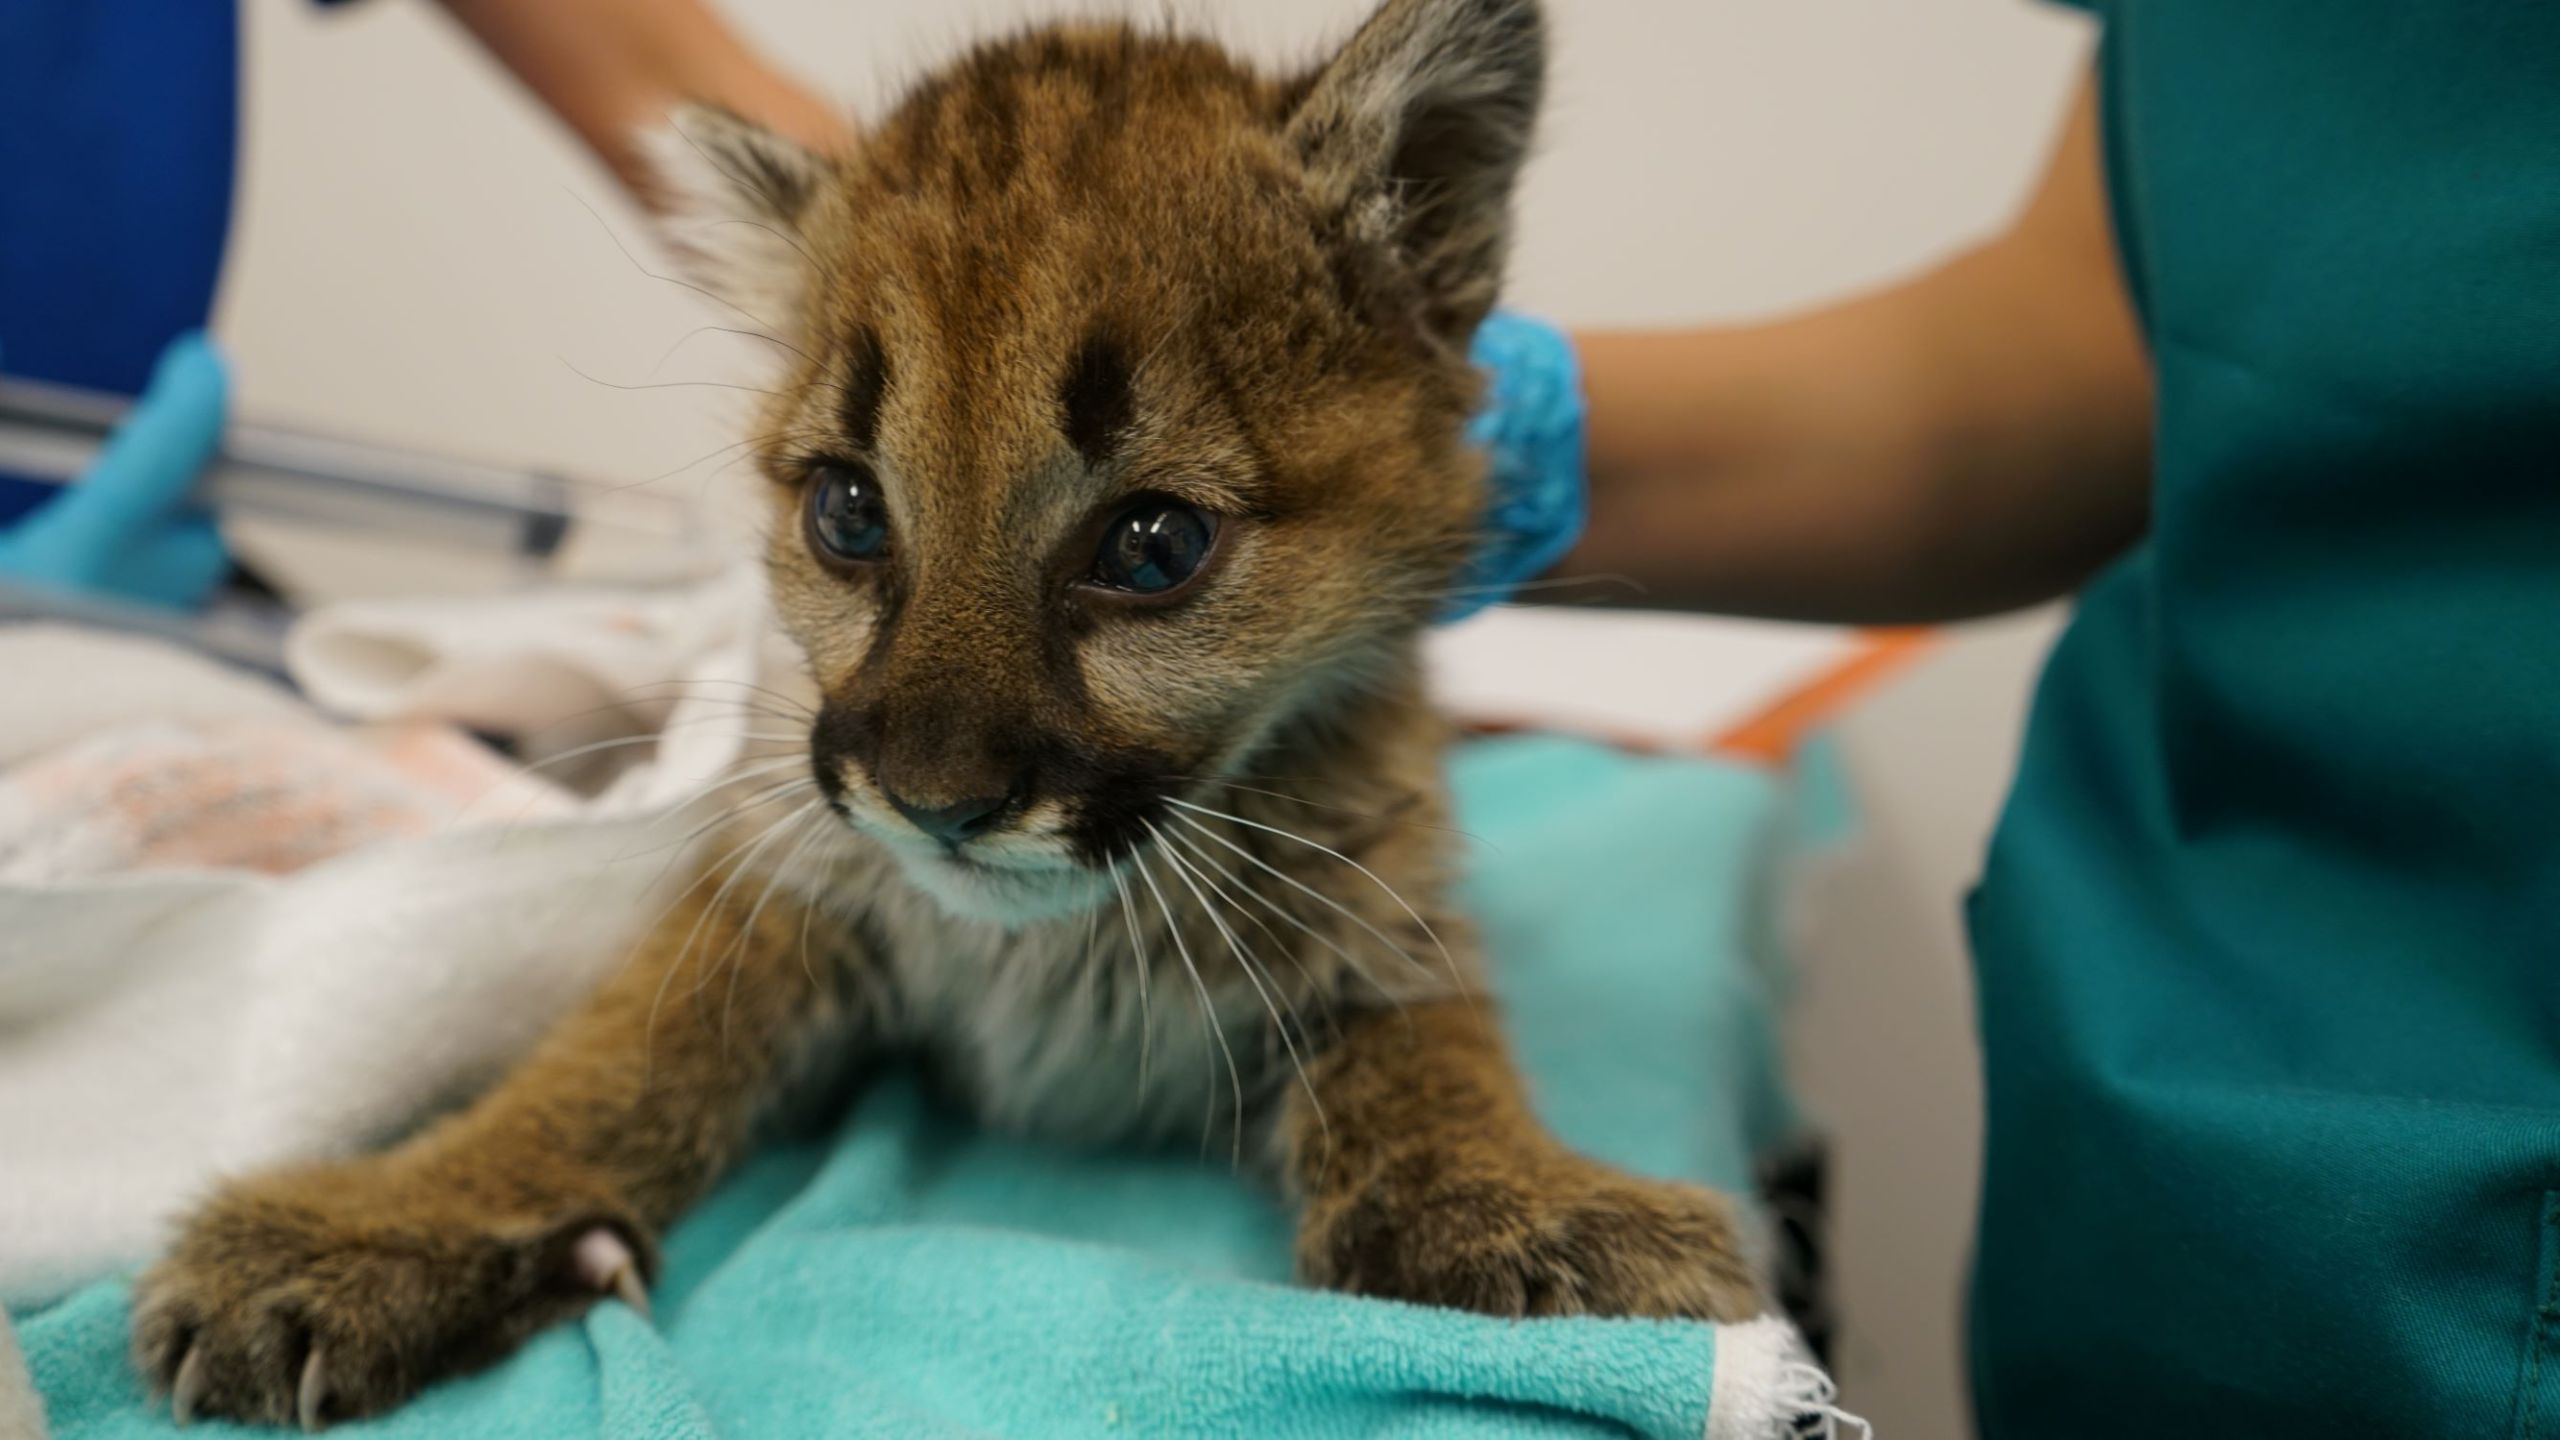 Oakland Zoo released this photo on Dec. 9 2019 of a mountain lion cub recovering at its facilities.